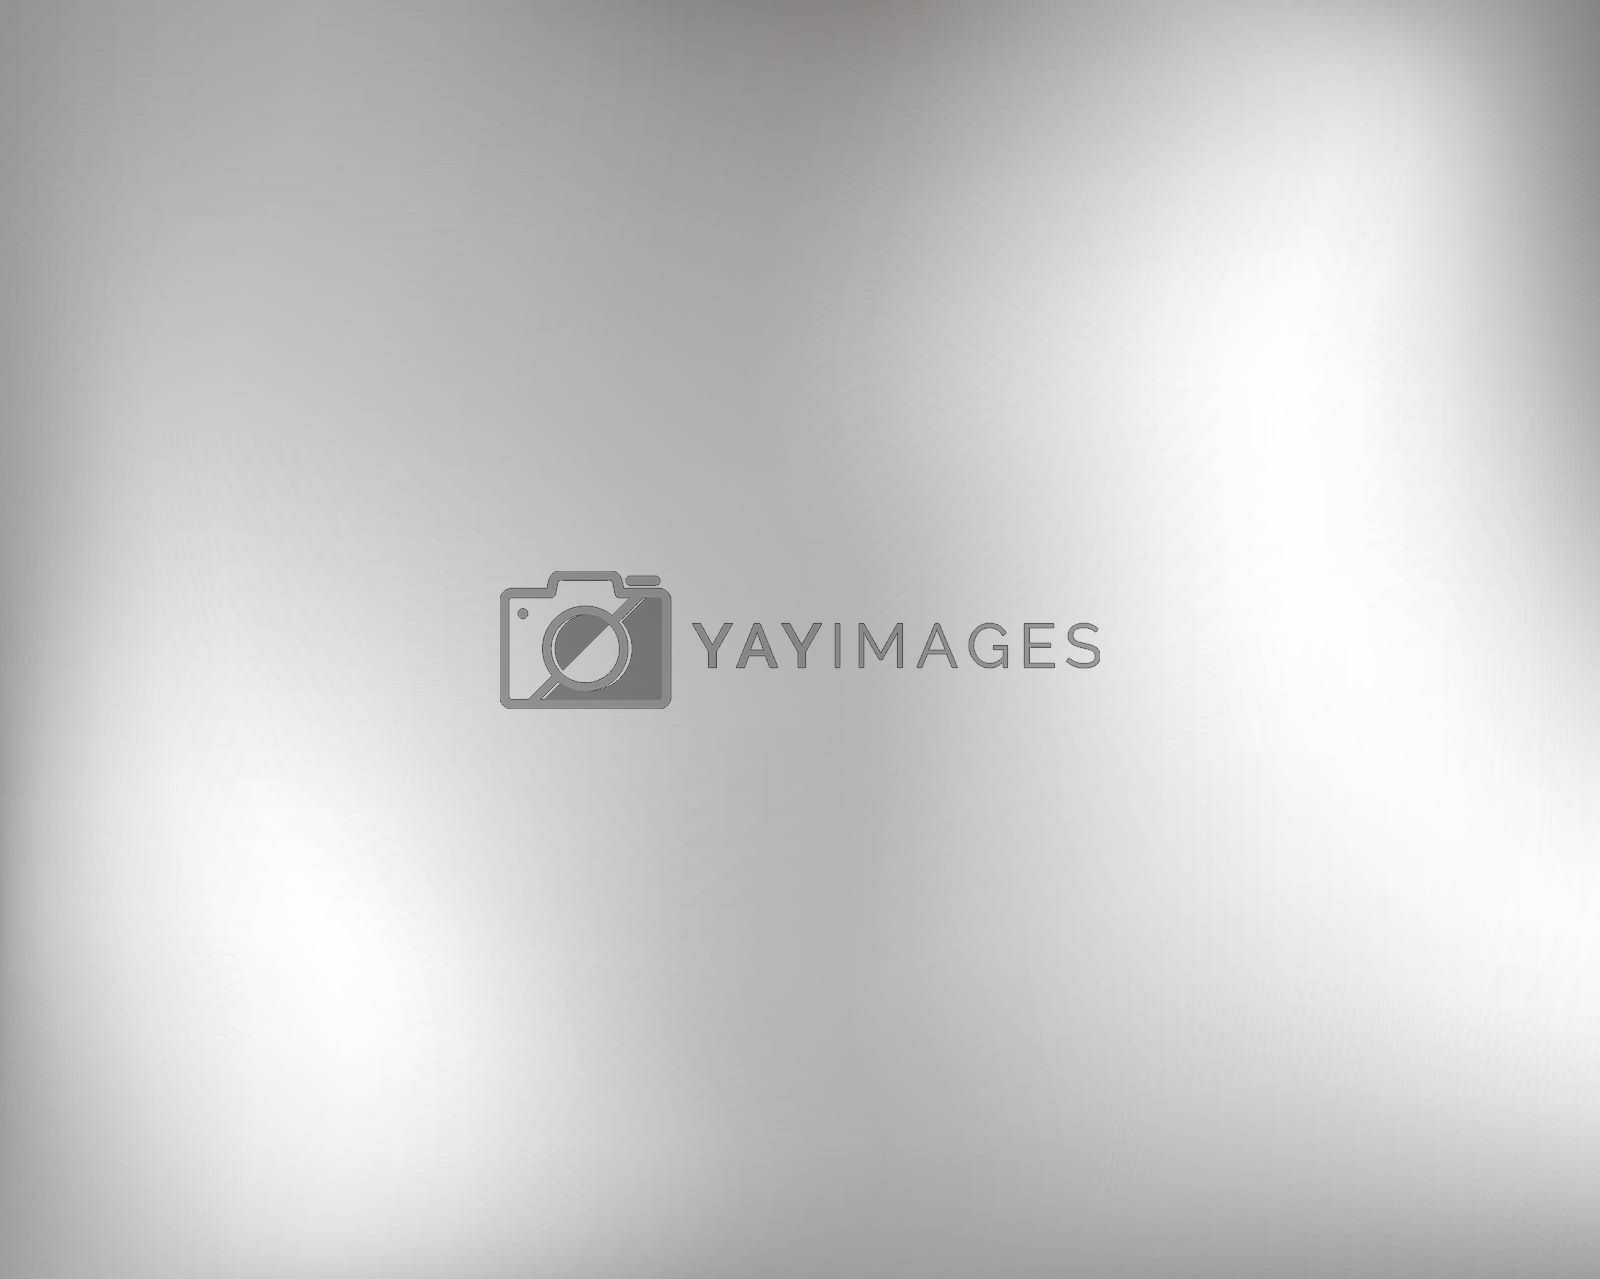 Light gray smooth background. Silver metal smooth texture background